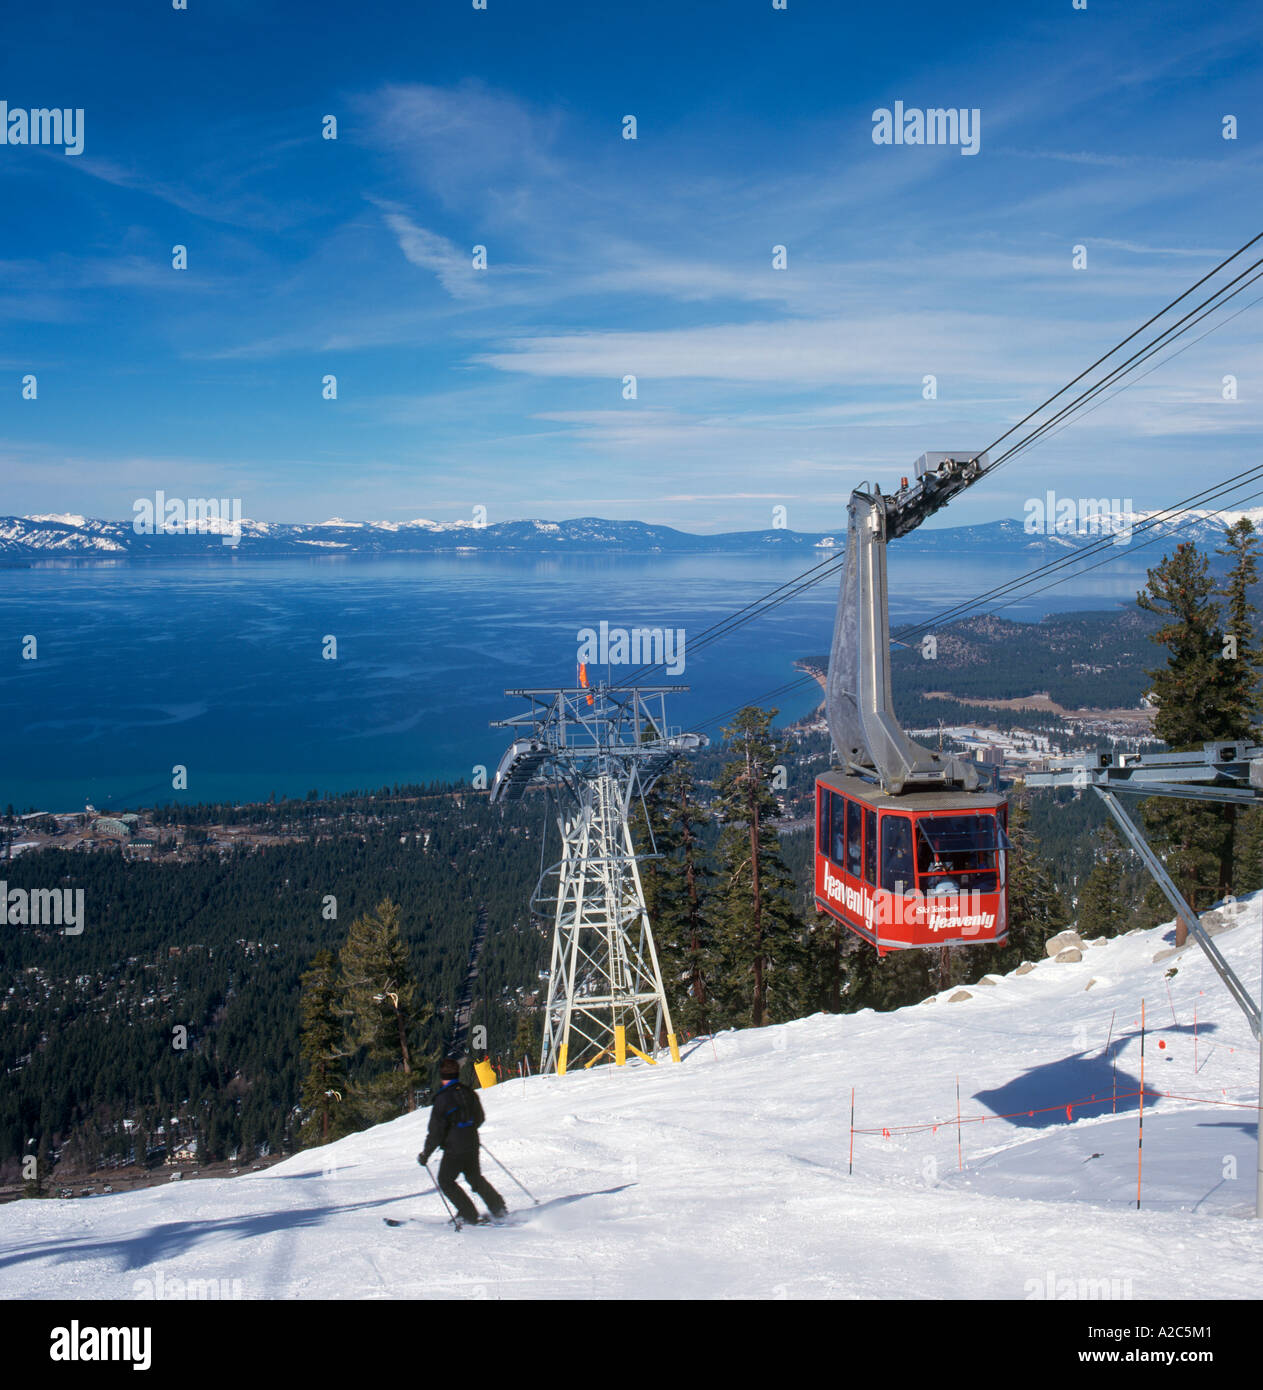 Aerial Tramway at the Heavenly Ski Area, Lake Tahoe, California/Nevada, USA - Stock Image